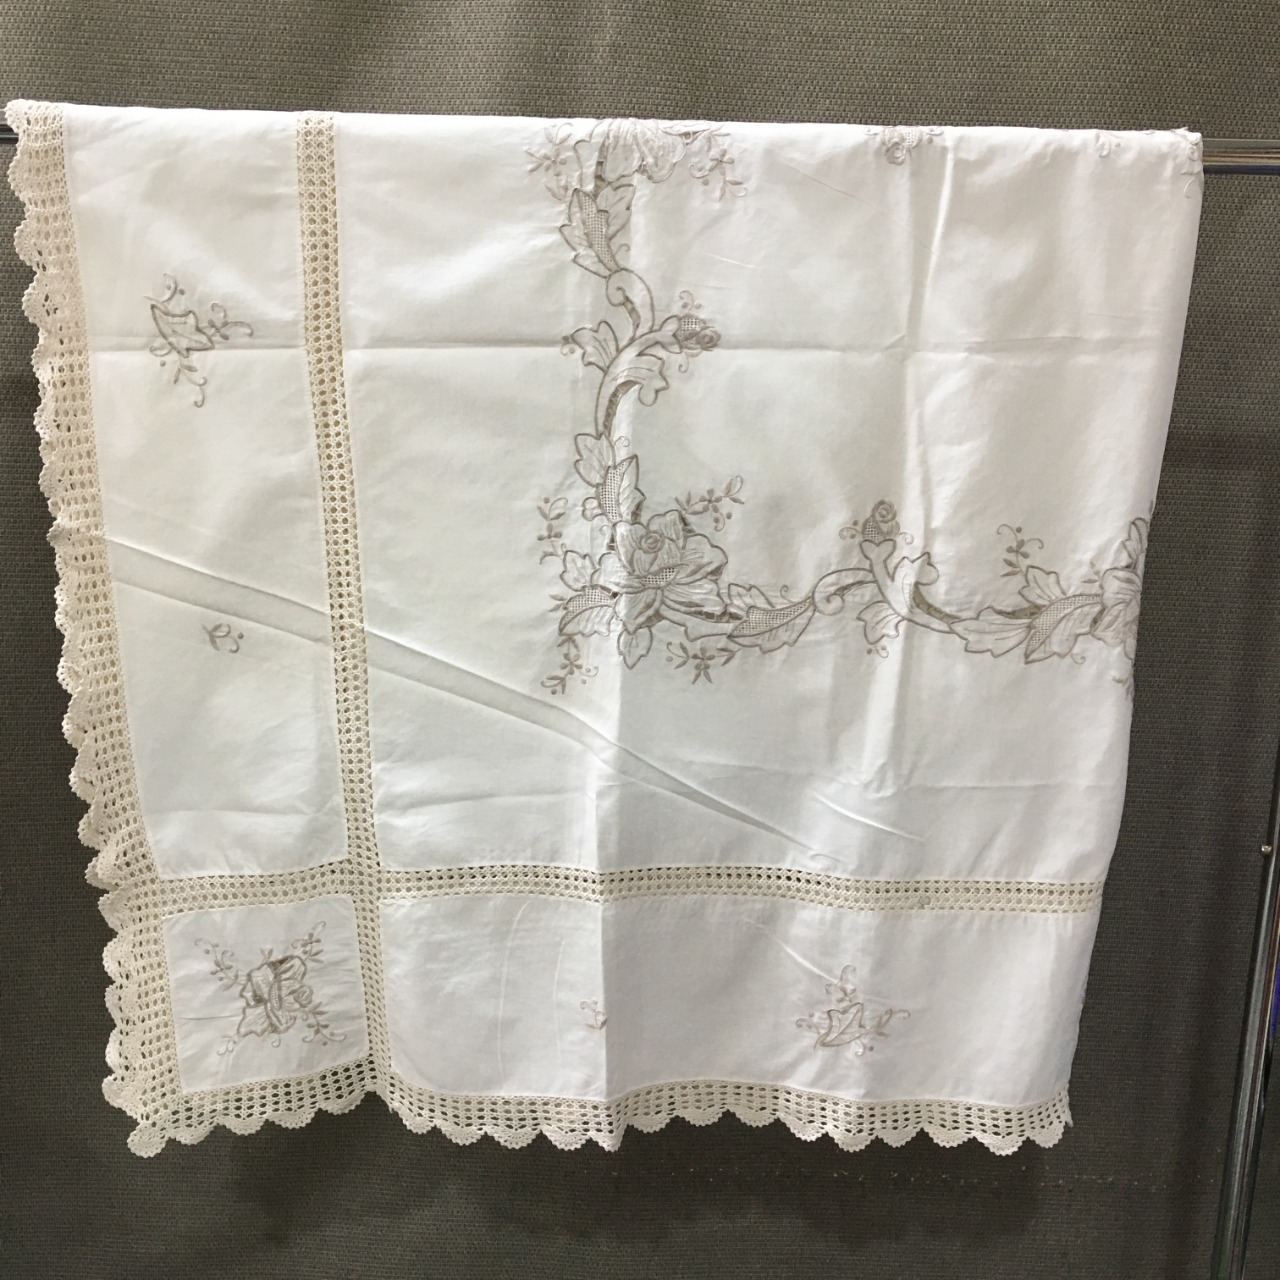 50% Off - Table Cloth, Embroidered & Crochet Trim, Antique-White